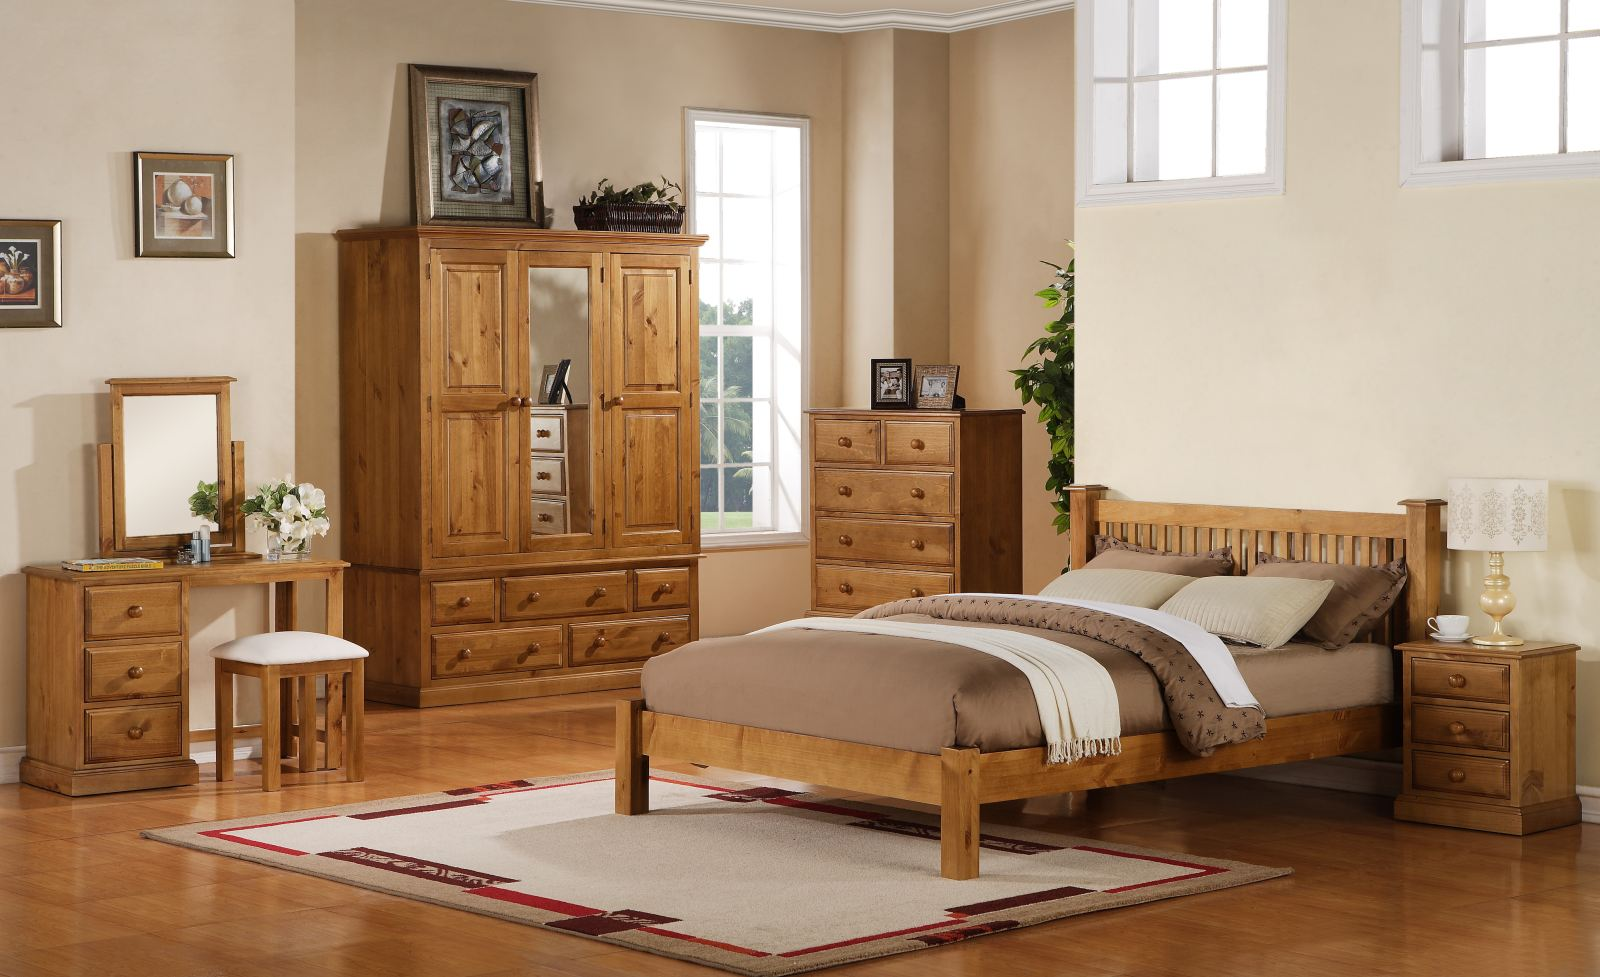 Pine bedroom furniture shopping tips for Pine bedroom furniture